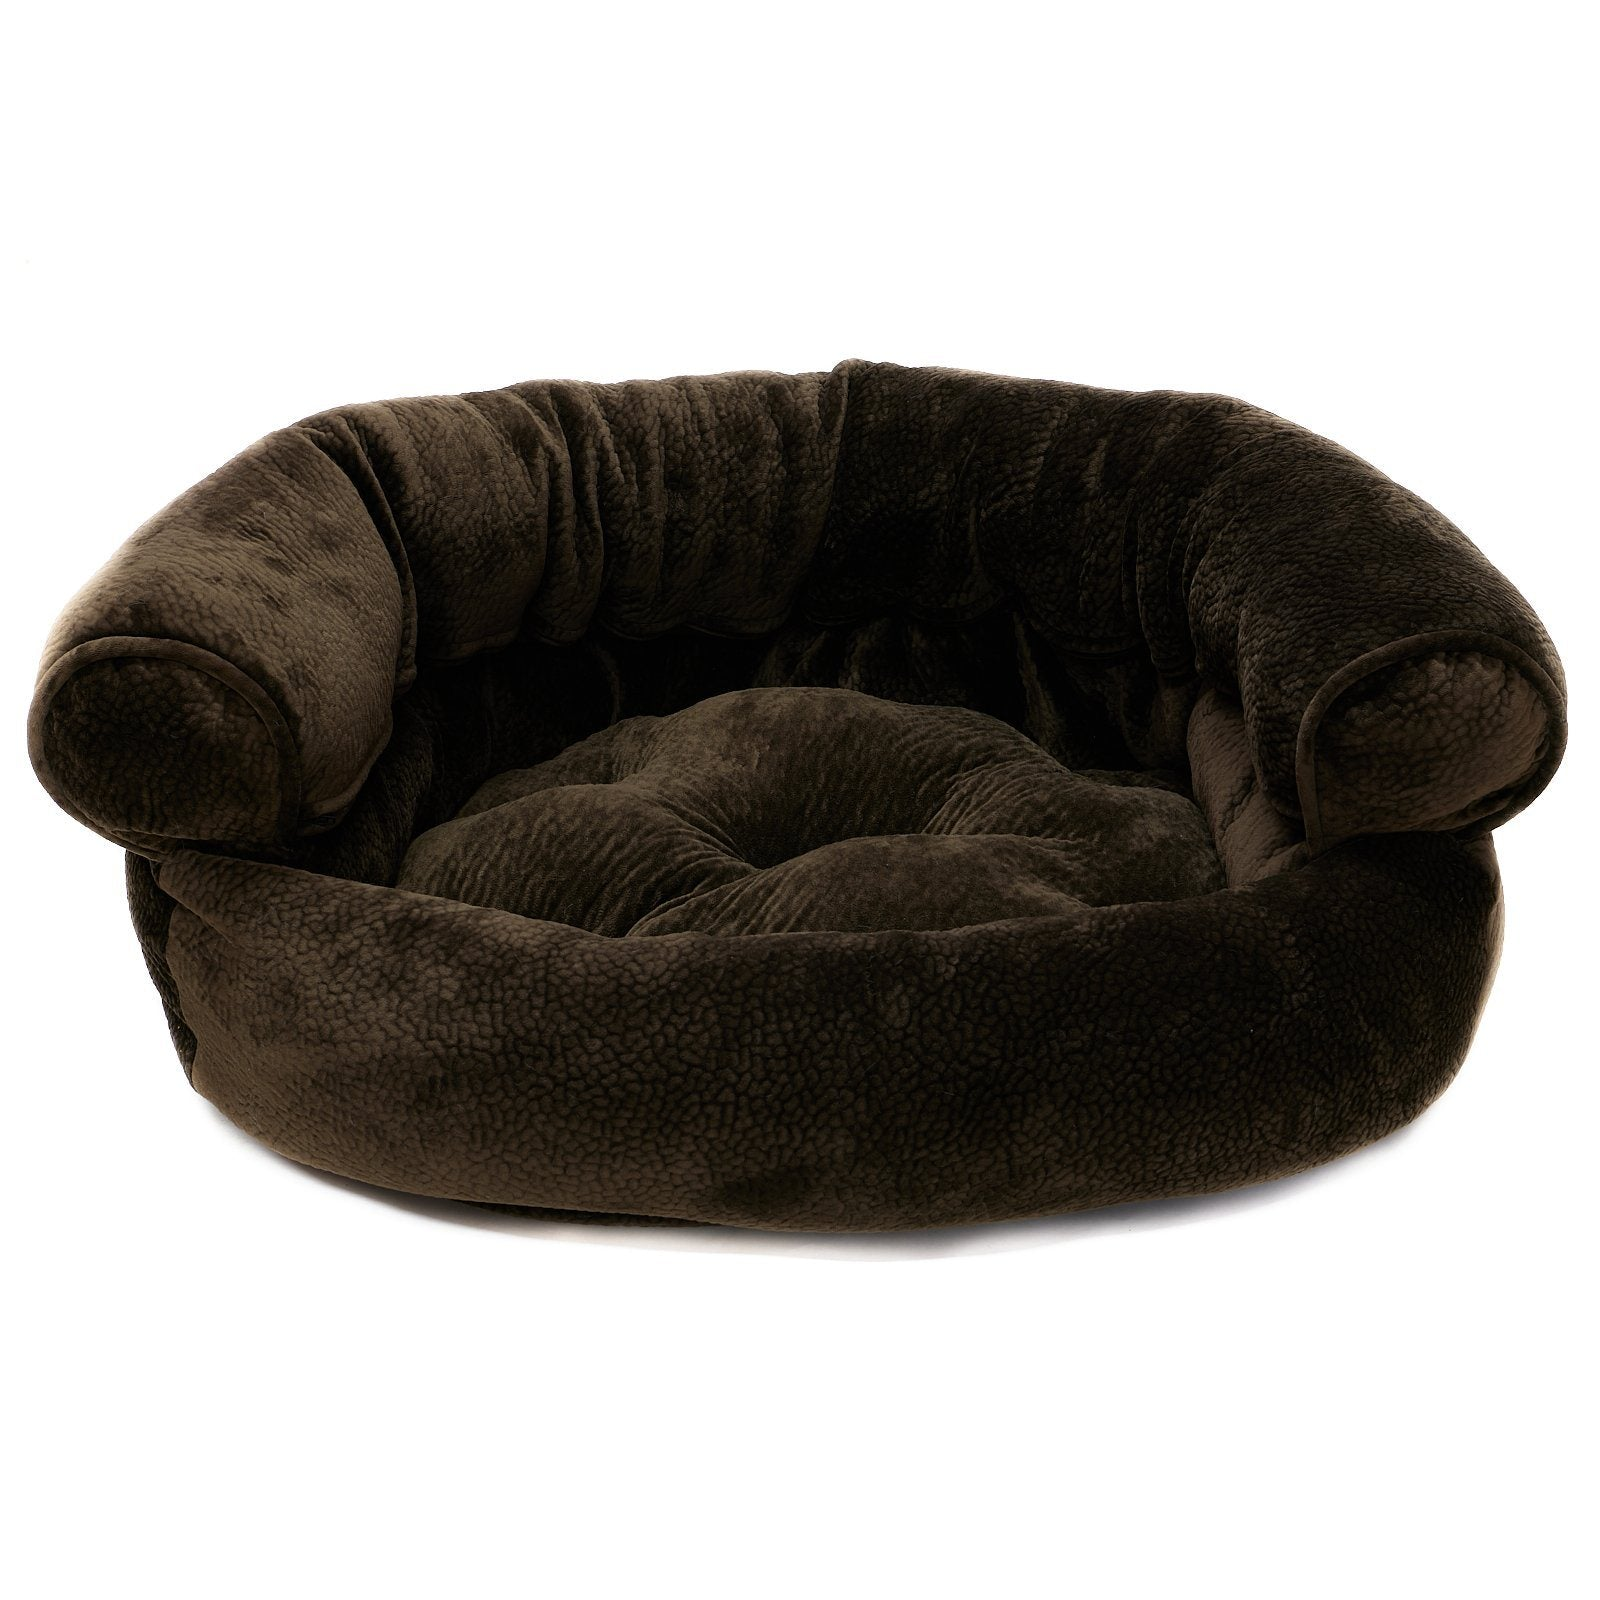 Animals Matter Luxury Sofa Dog Bed Chocolate